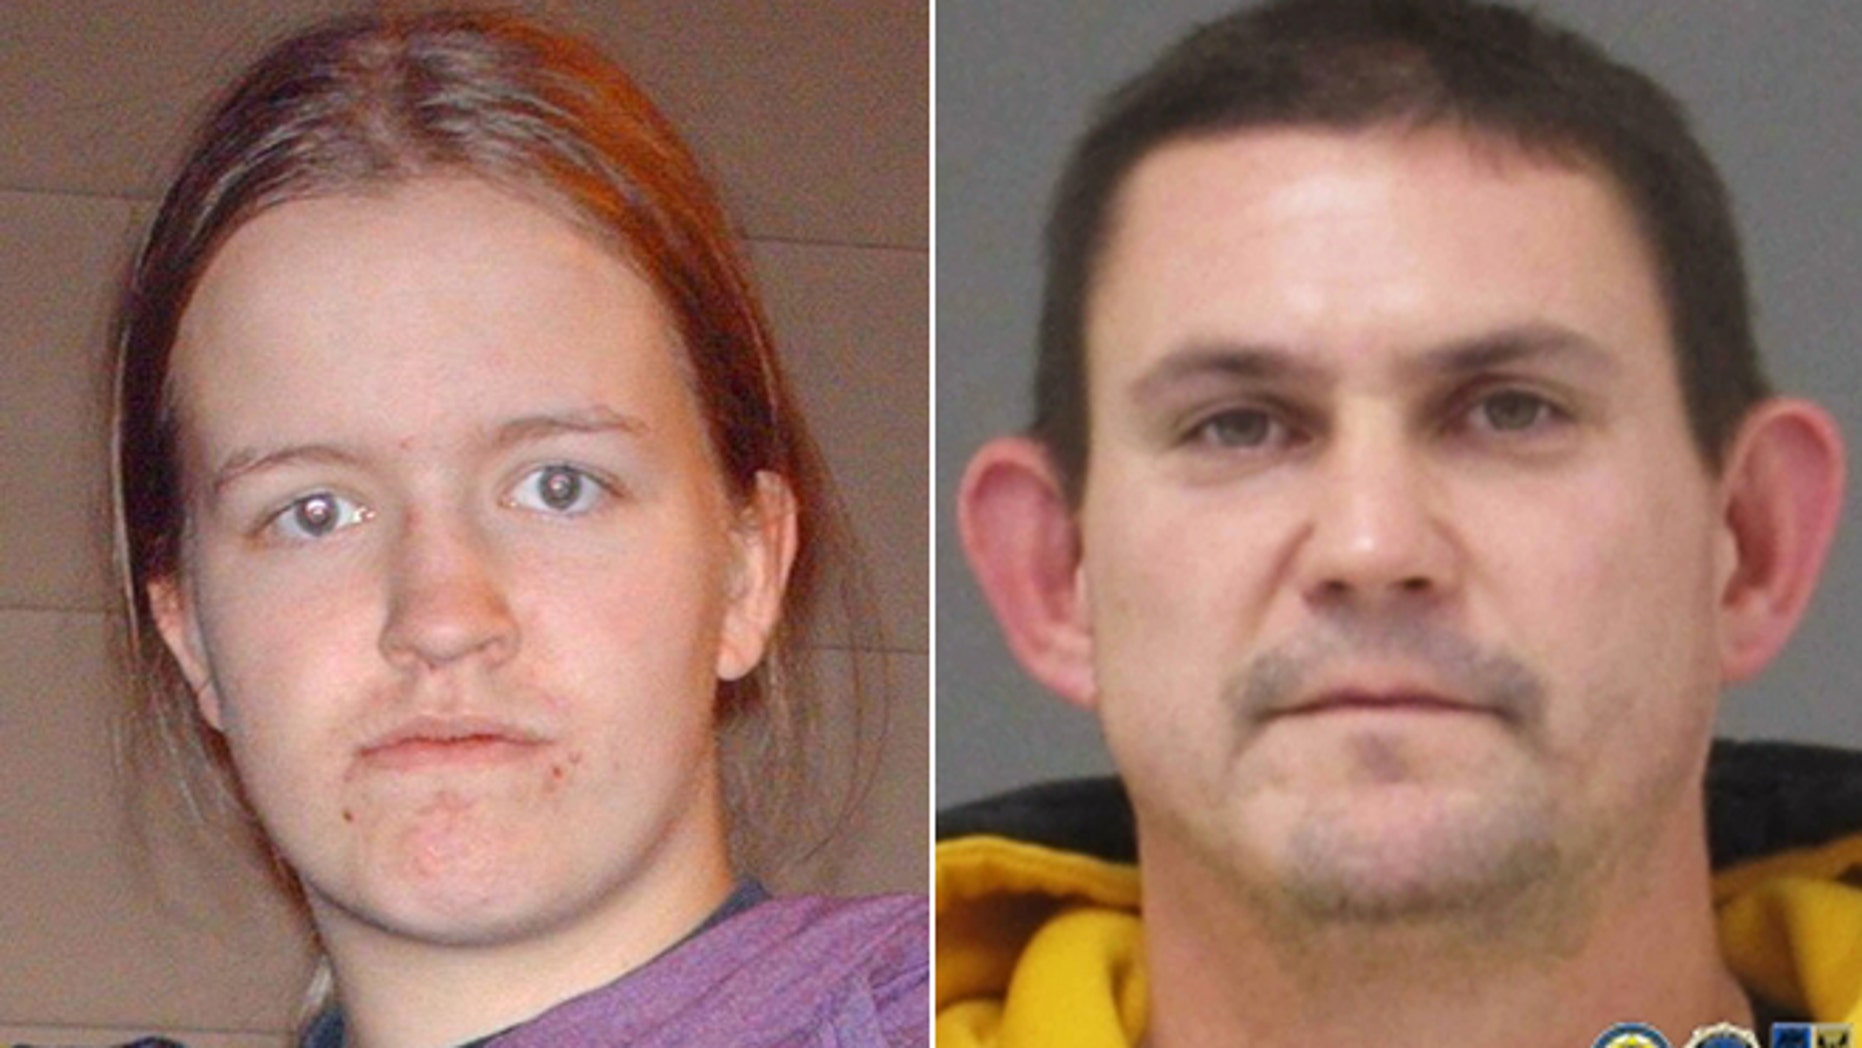 This file photo provided by The Iowa Department of Public Safety shows Kathlynn Shepard, 15. Michael J. Klunder, right, who police believe abducted 15-year-old Kathlynn Shepard and her 12-year-old friend Monday, May 20, 2013, as they walked home from school, committed suicide after the younger girl escaped.